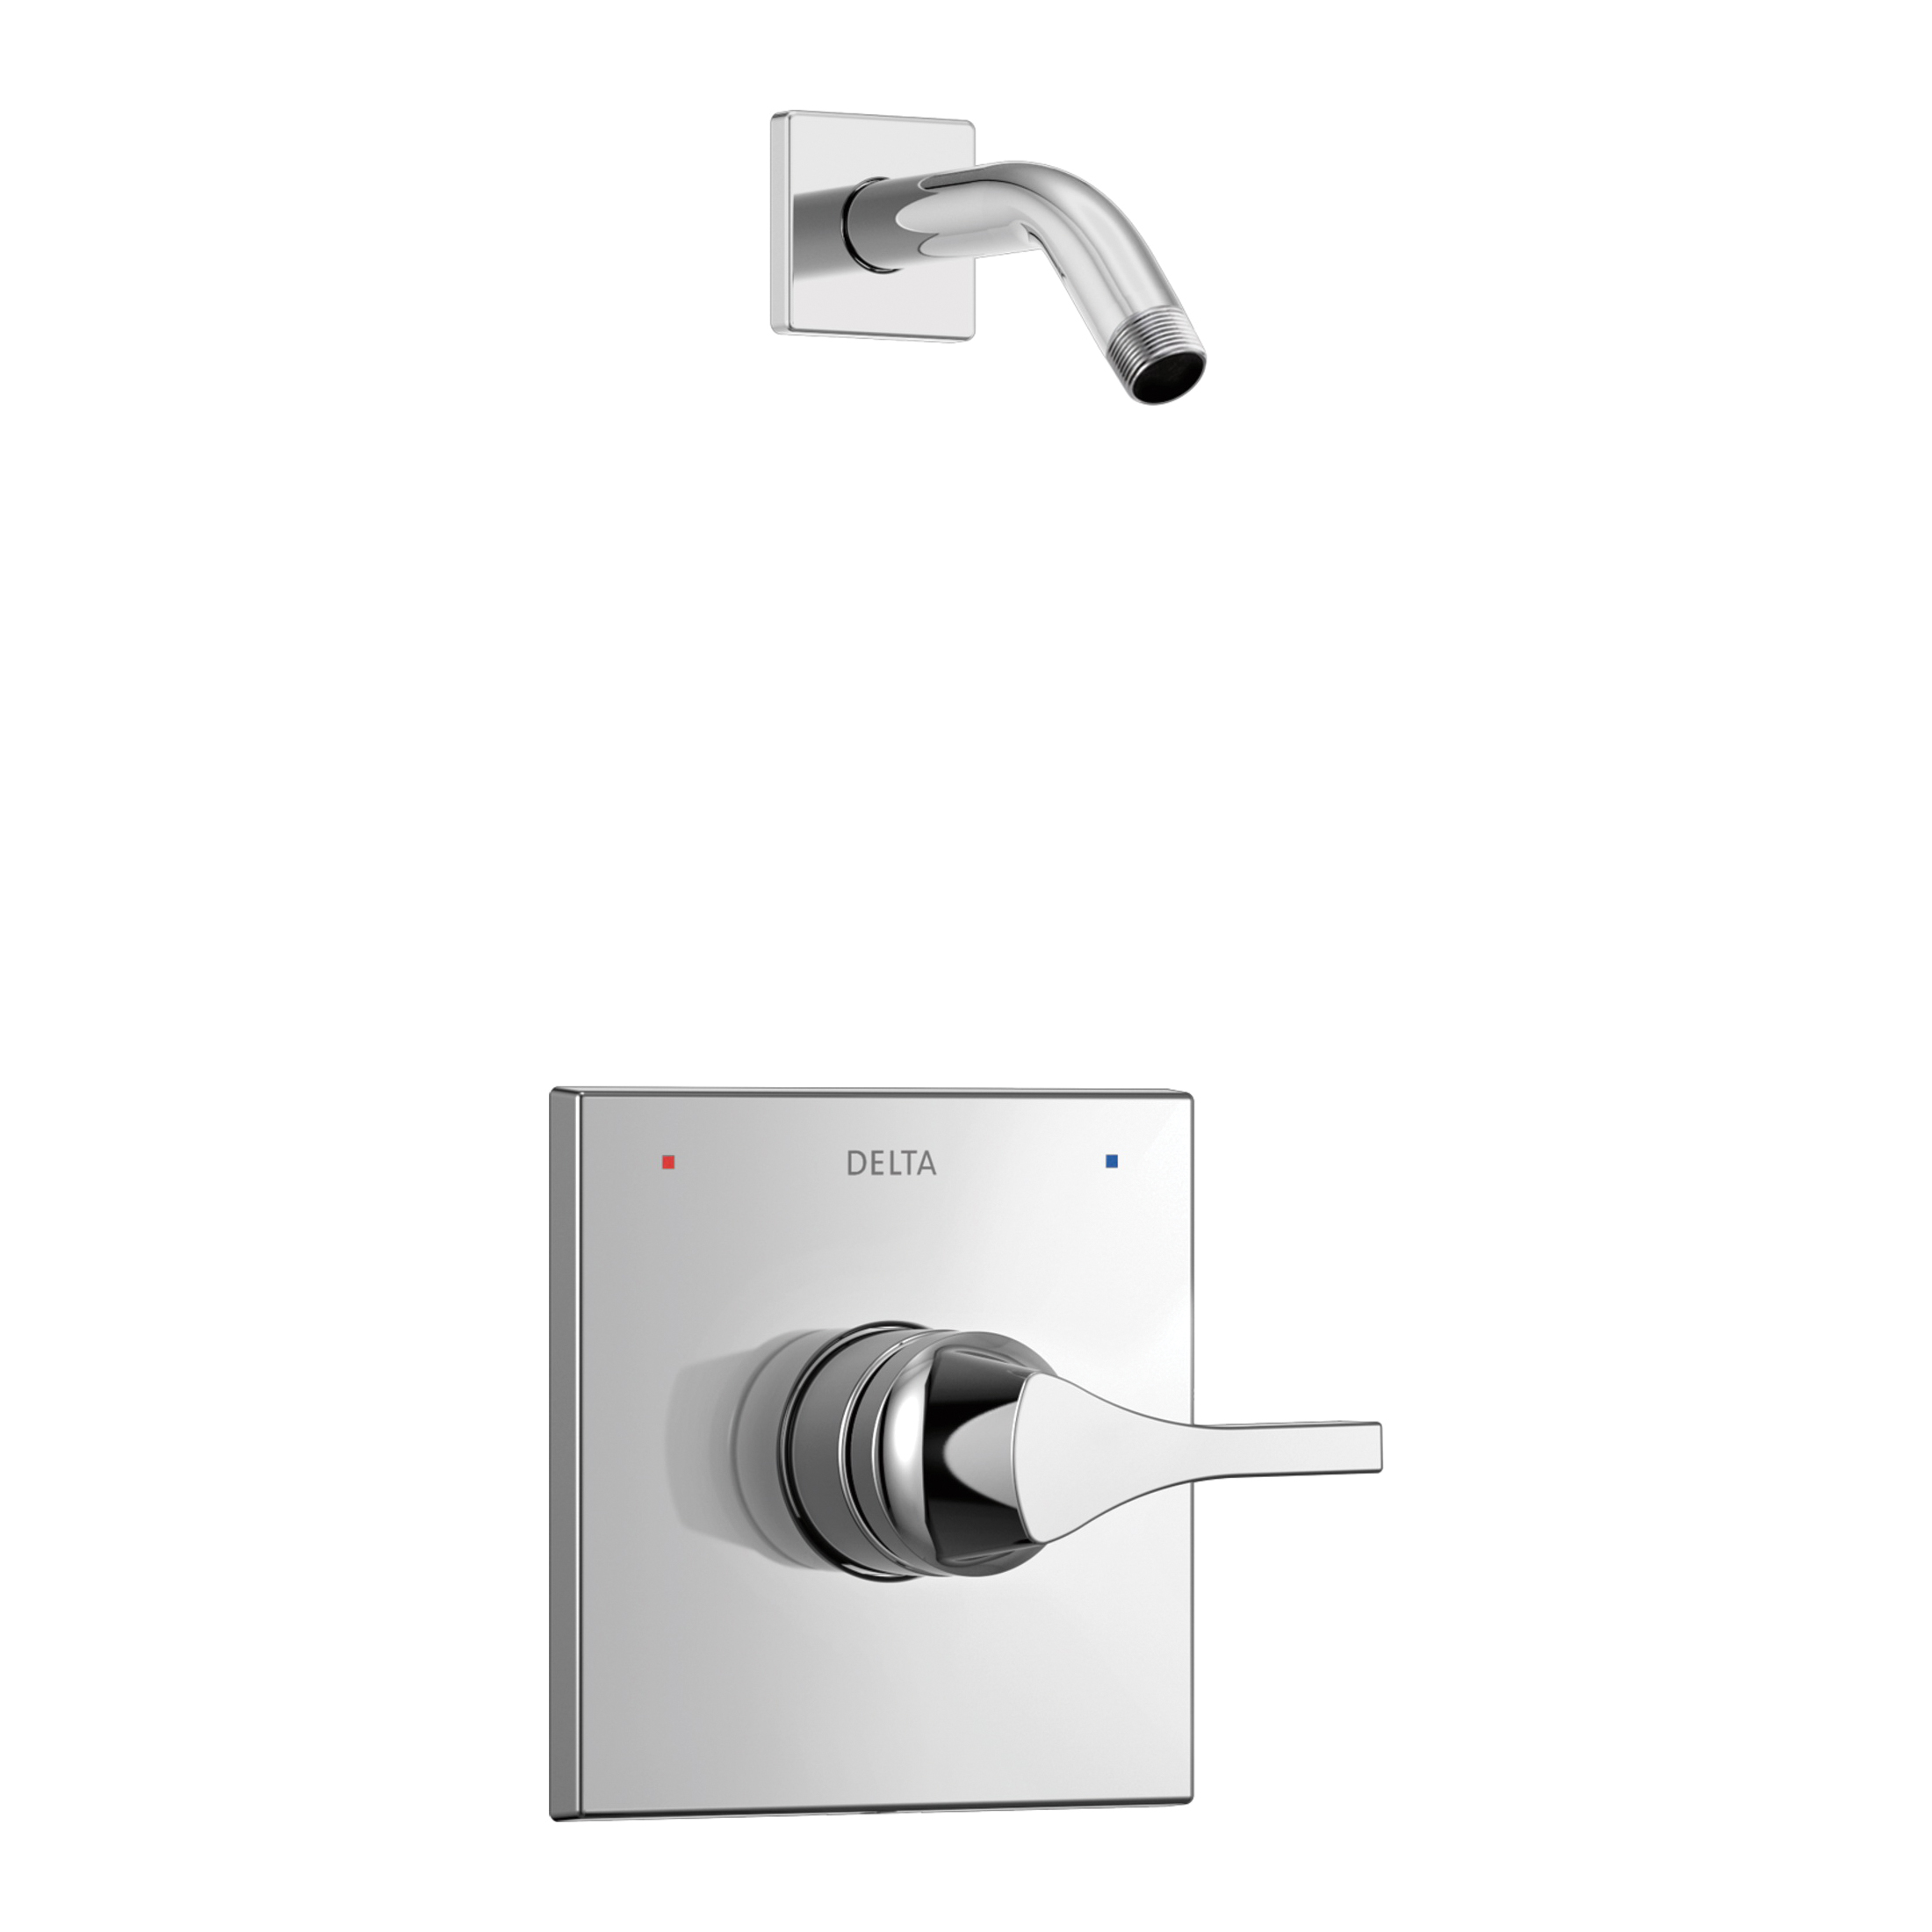 DELTA® T14274-LHD Monitor® 14 Shower Trim, Hand Shower Yes/No: No, Chrome Plated